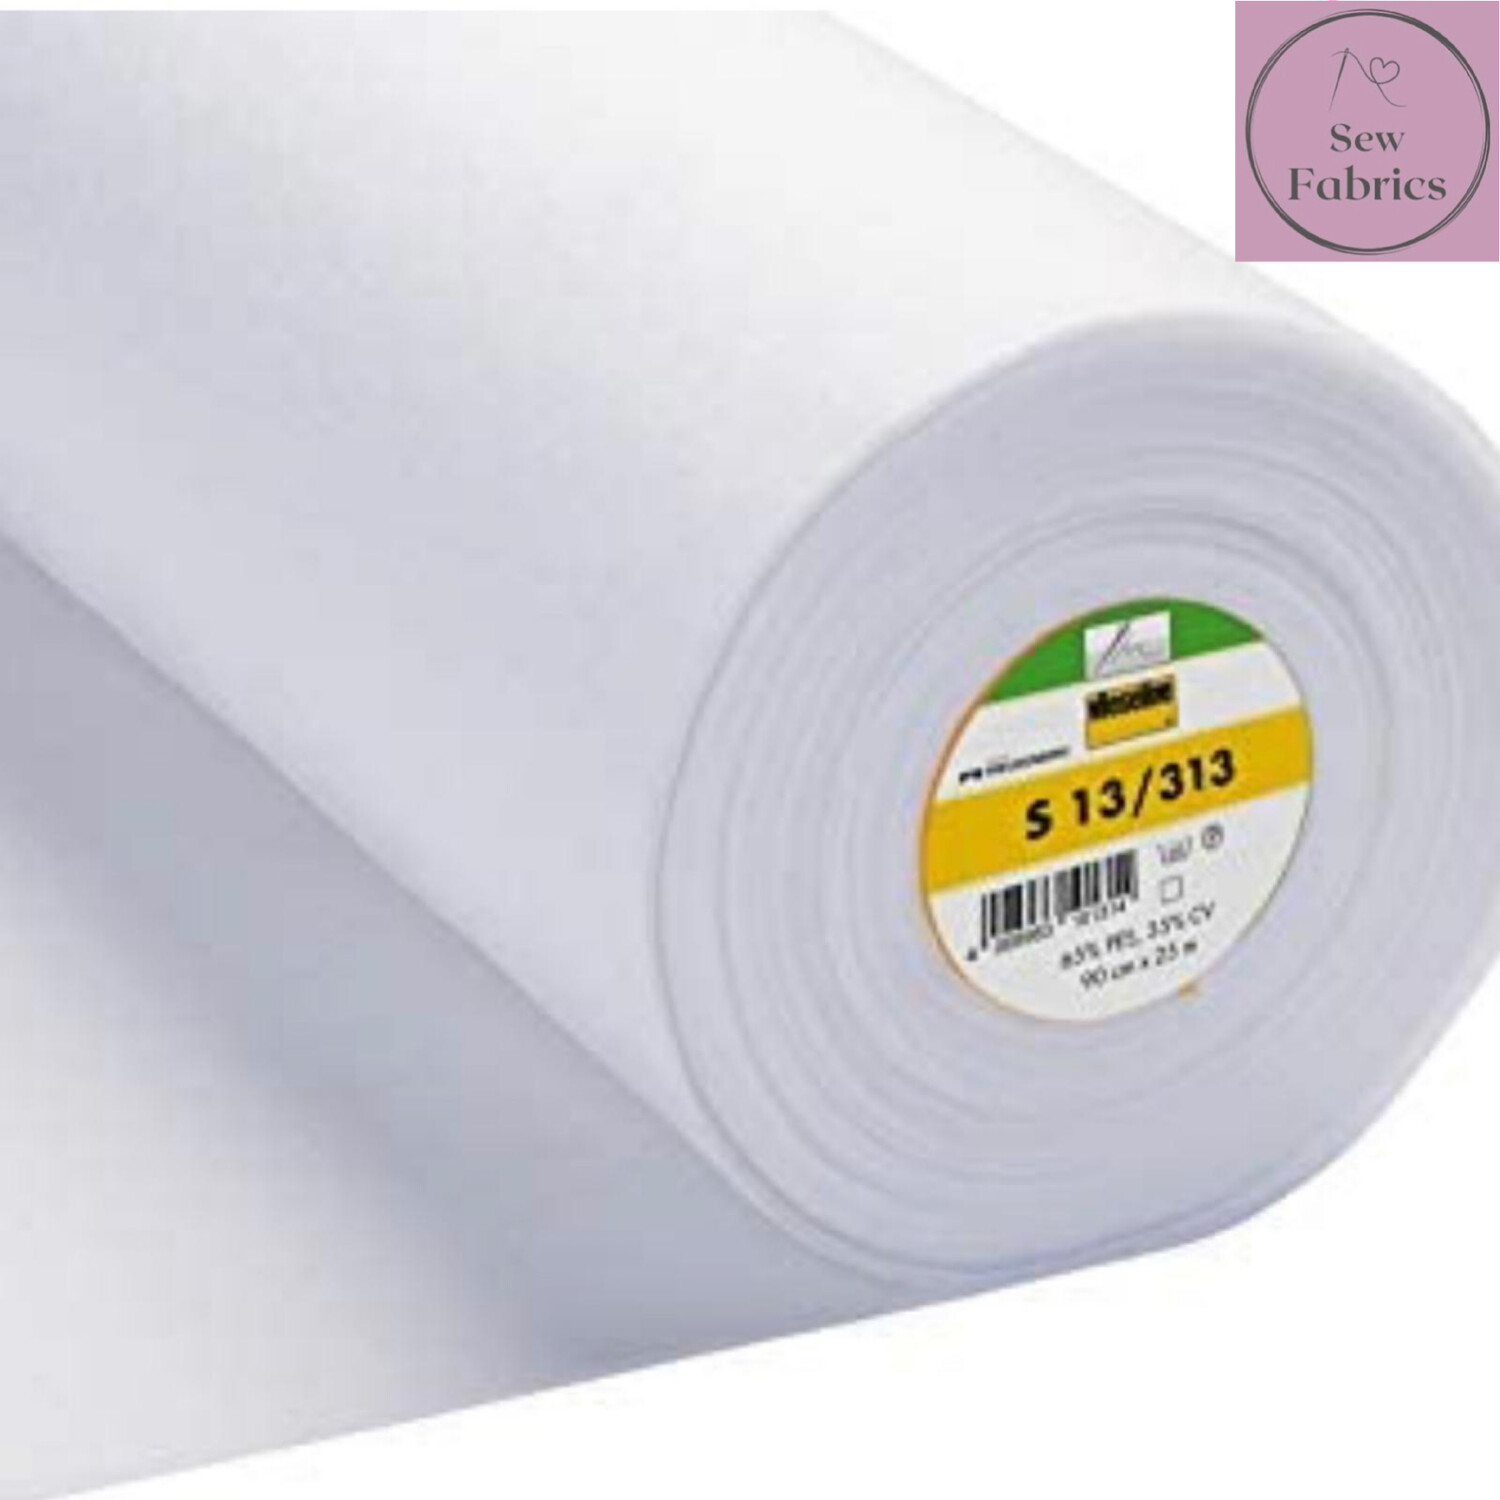 1m x White Heavyweight Standard Sew-in Non Woven Interfacing/Interlining 90cm Wide by Vilene Vlieseline, for stiffening fabrics